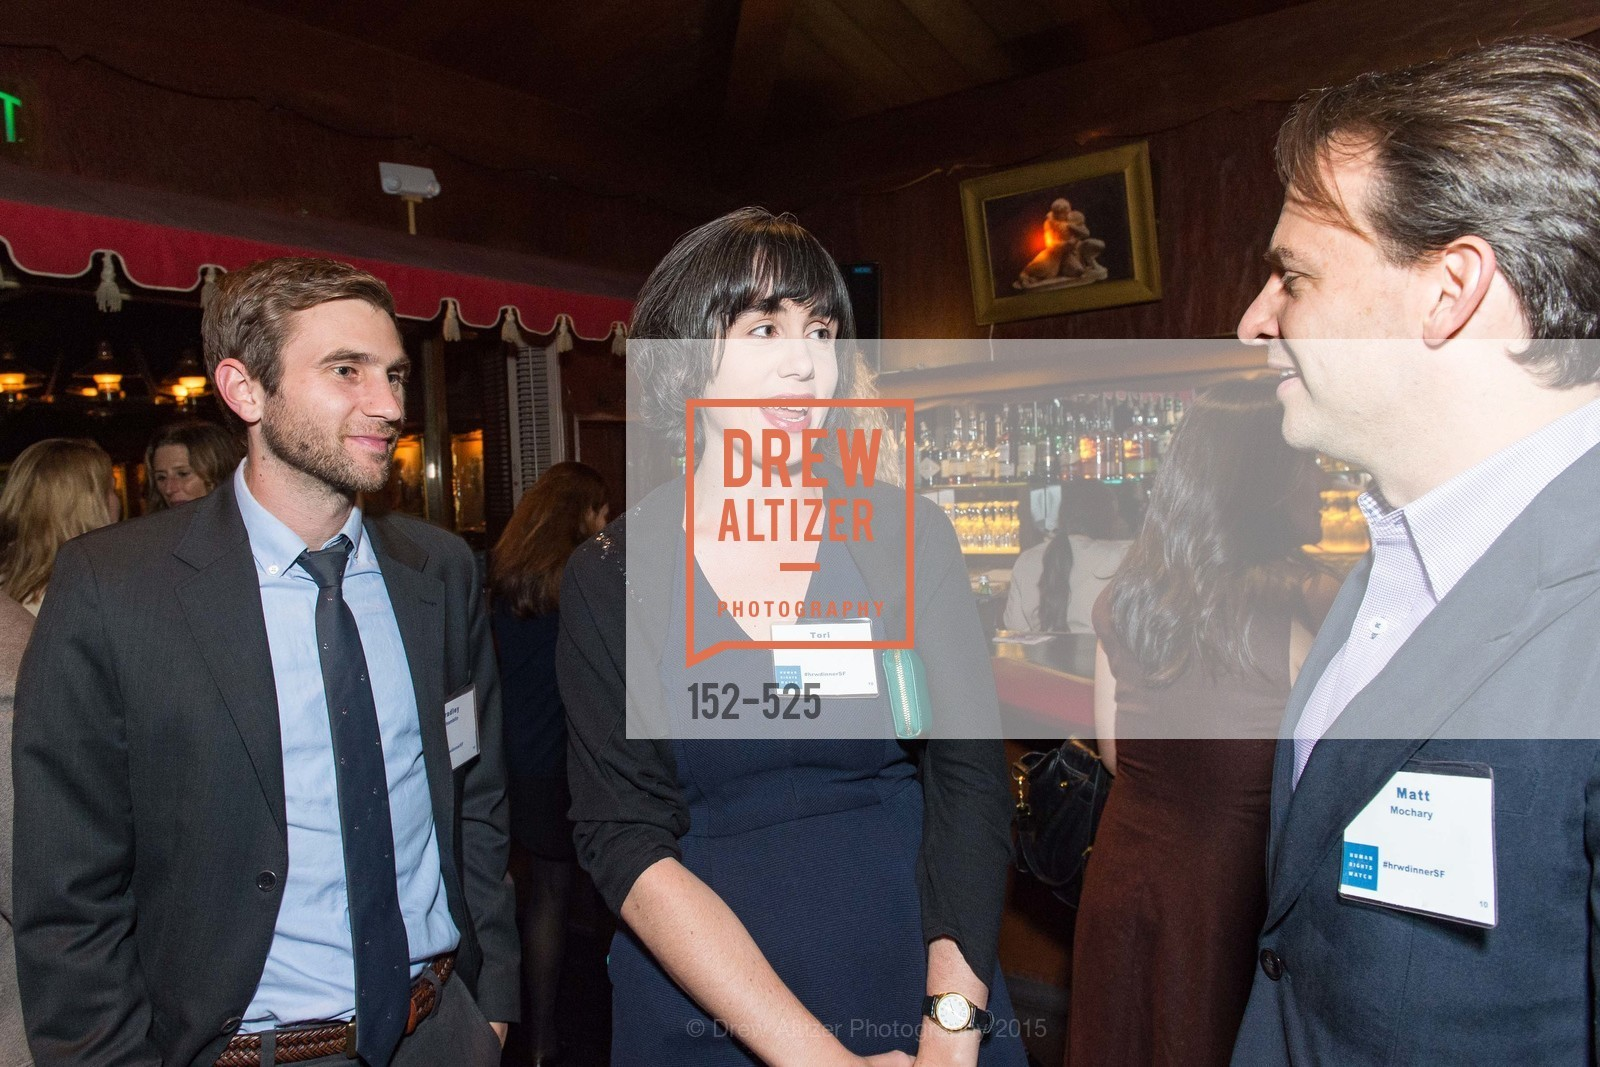 Tori Lanterman, Matt Mocahry, Human Rights Watch Voices for Justice, Bimbo's. 2525 Van Ness St, November 12th, 2015,Drew Altizer, Drew Altizer Photography, full-service agency, private events, San Francisco photographer, photographer california